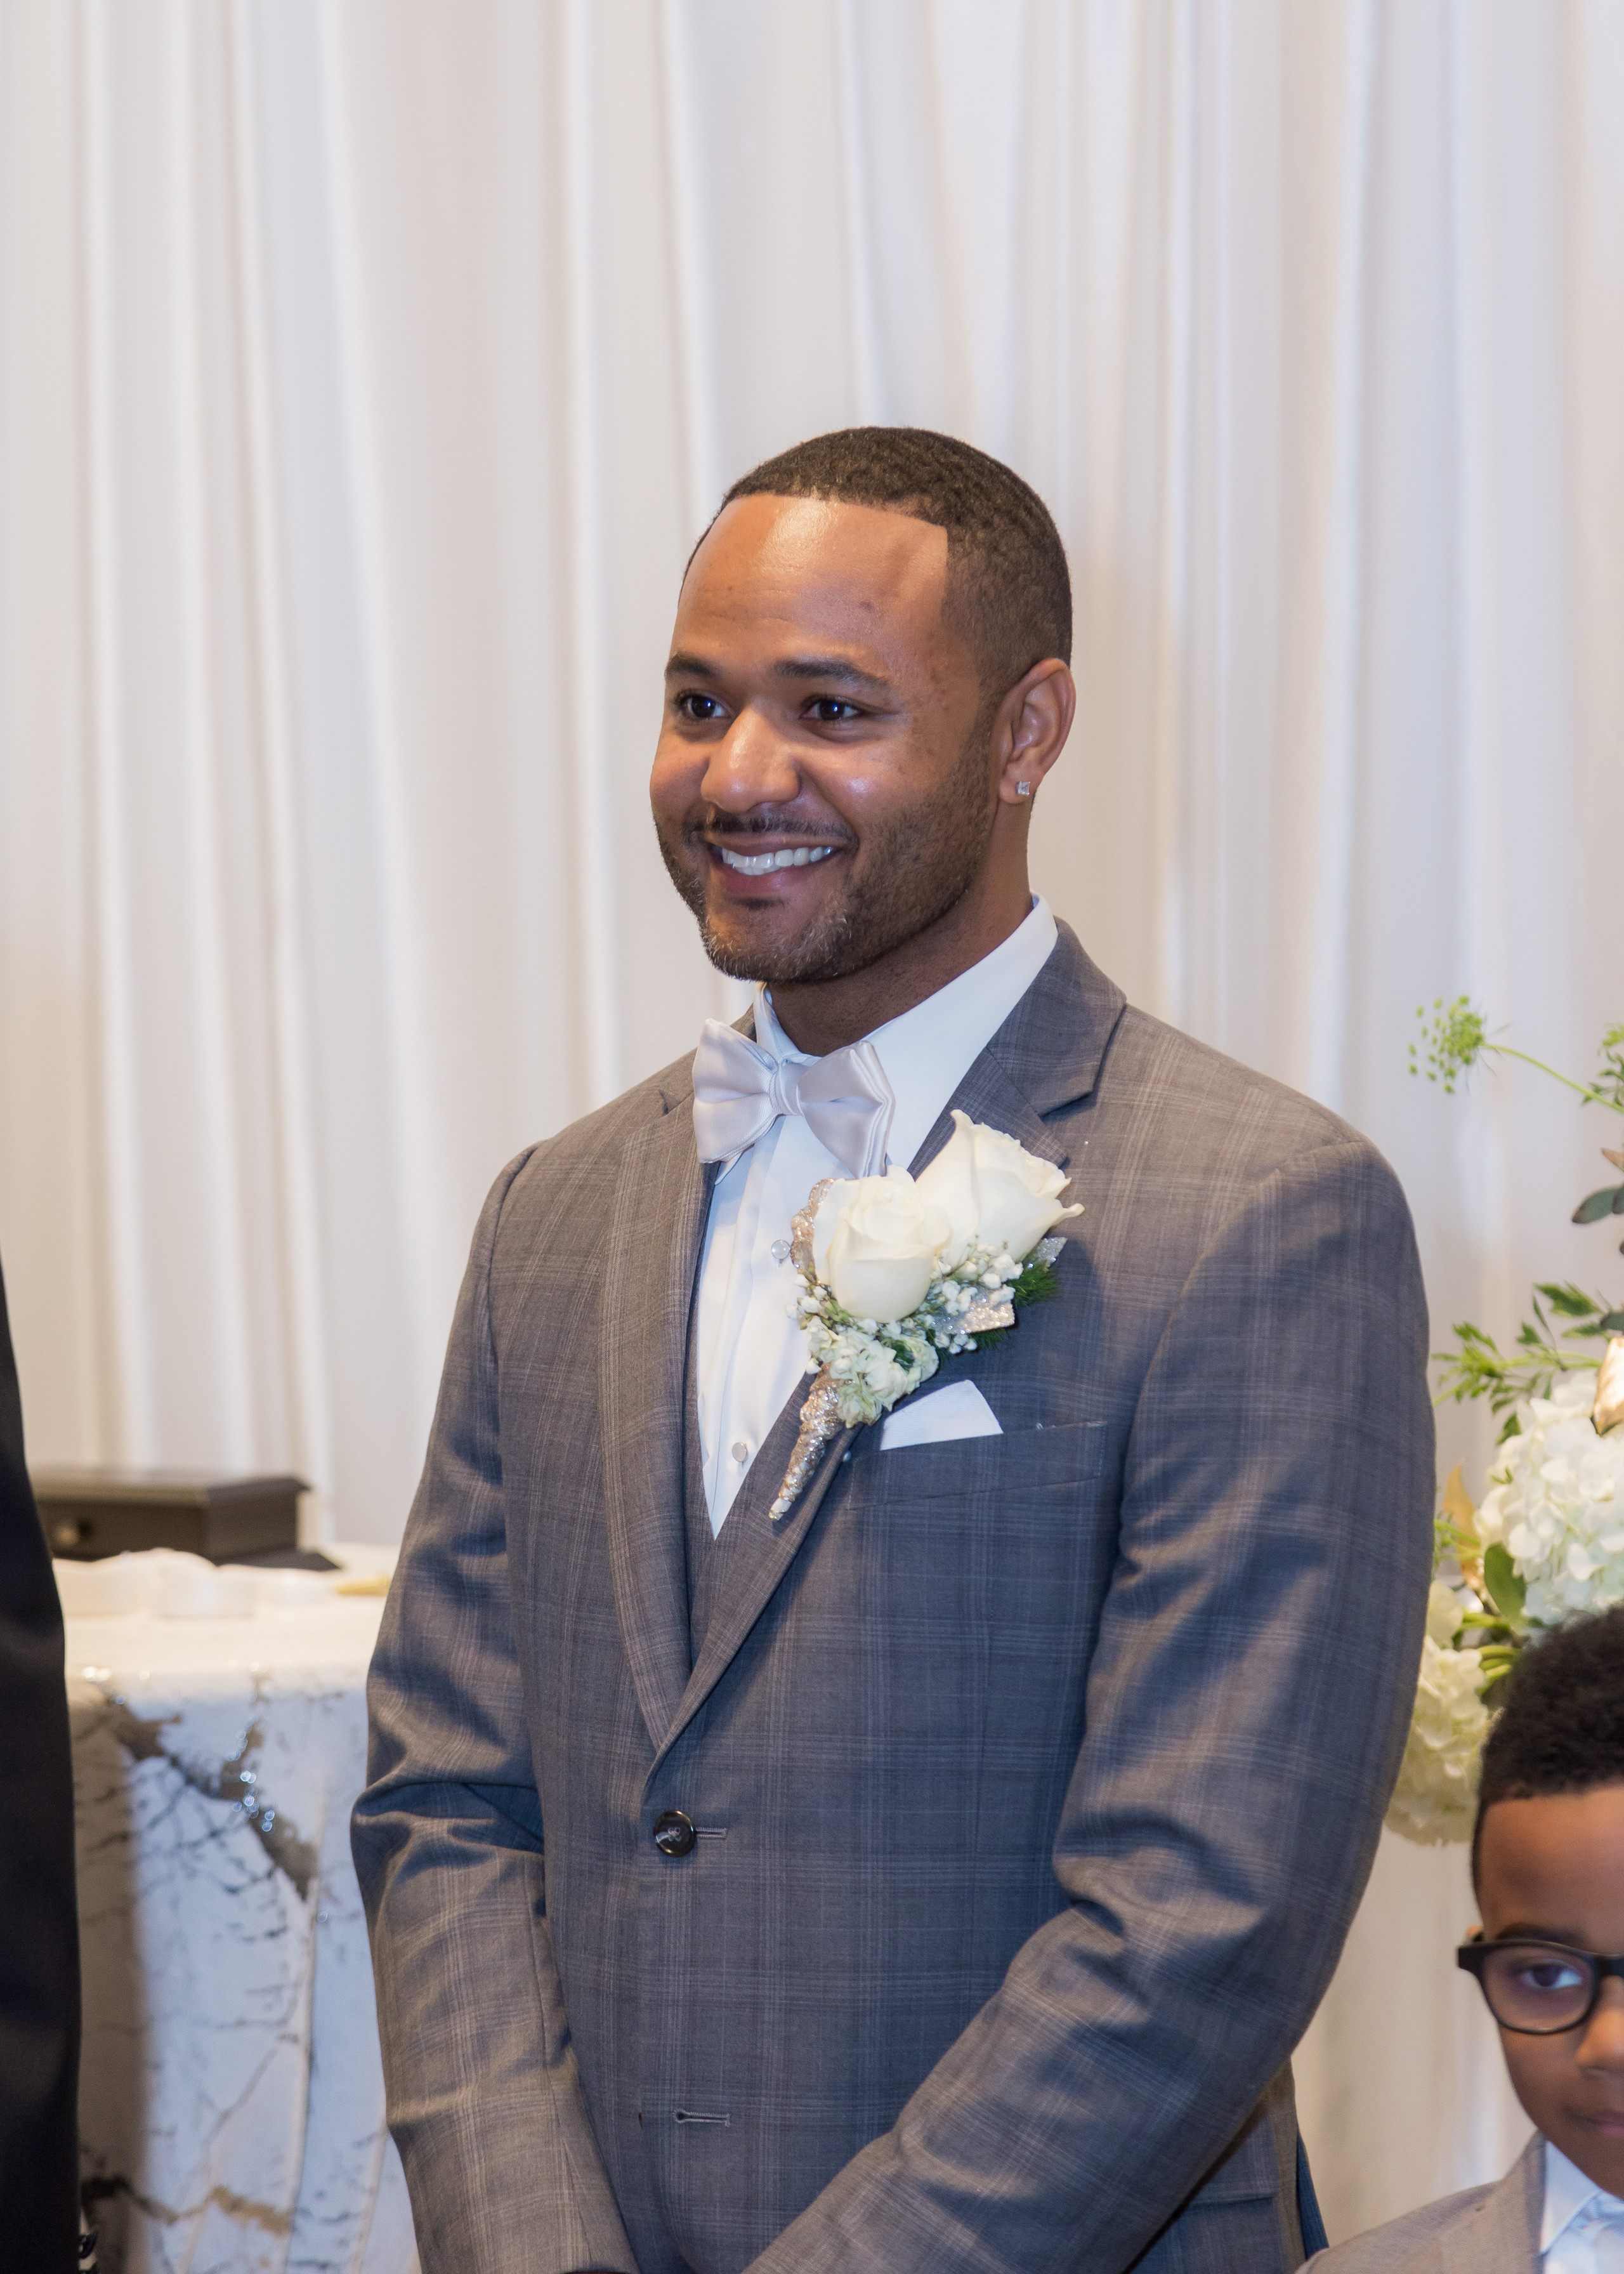 The groom at the alter awaiting his bride during the wedding ceremony at the Hilton Main in Norfolk, Virginia.